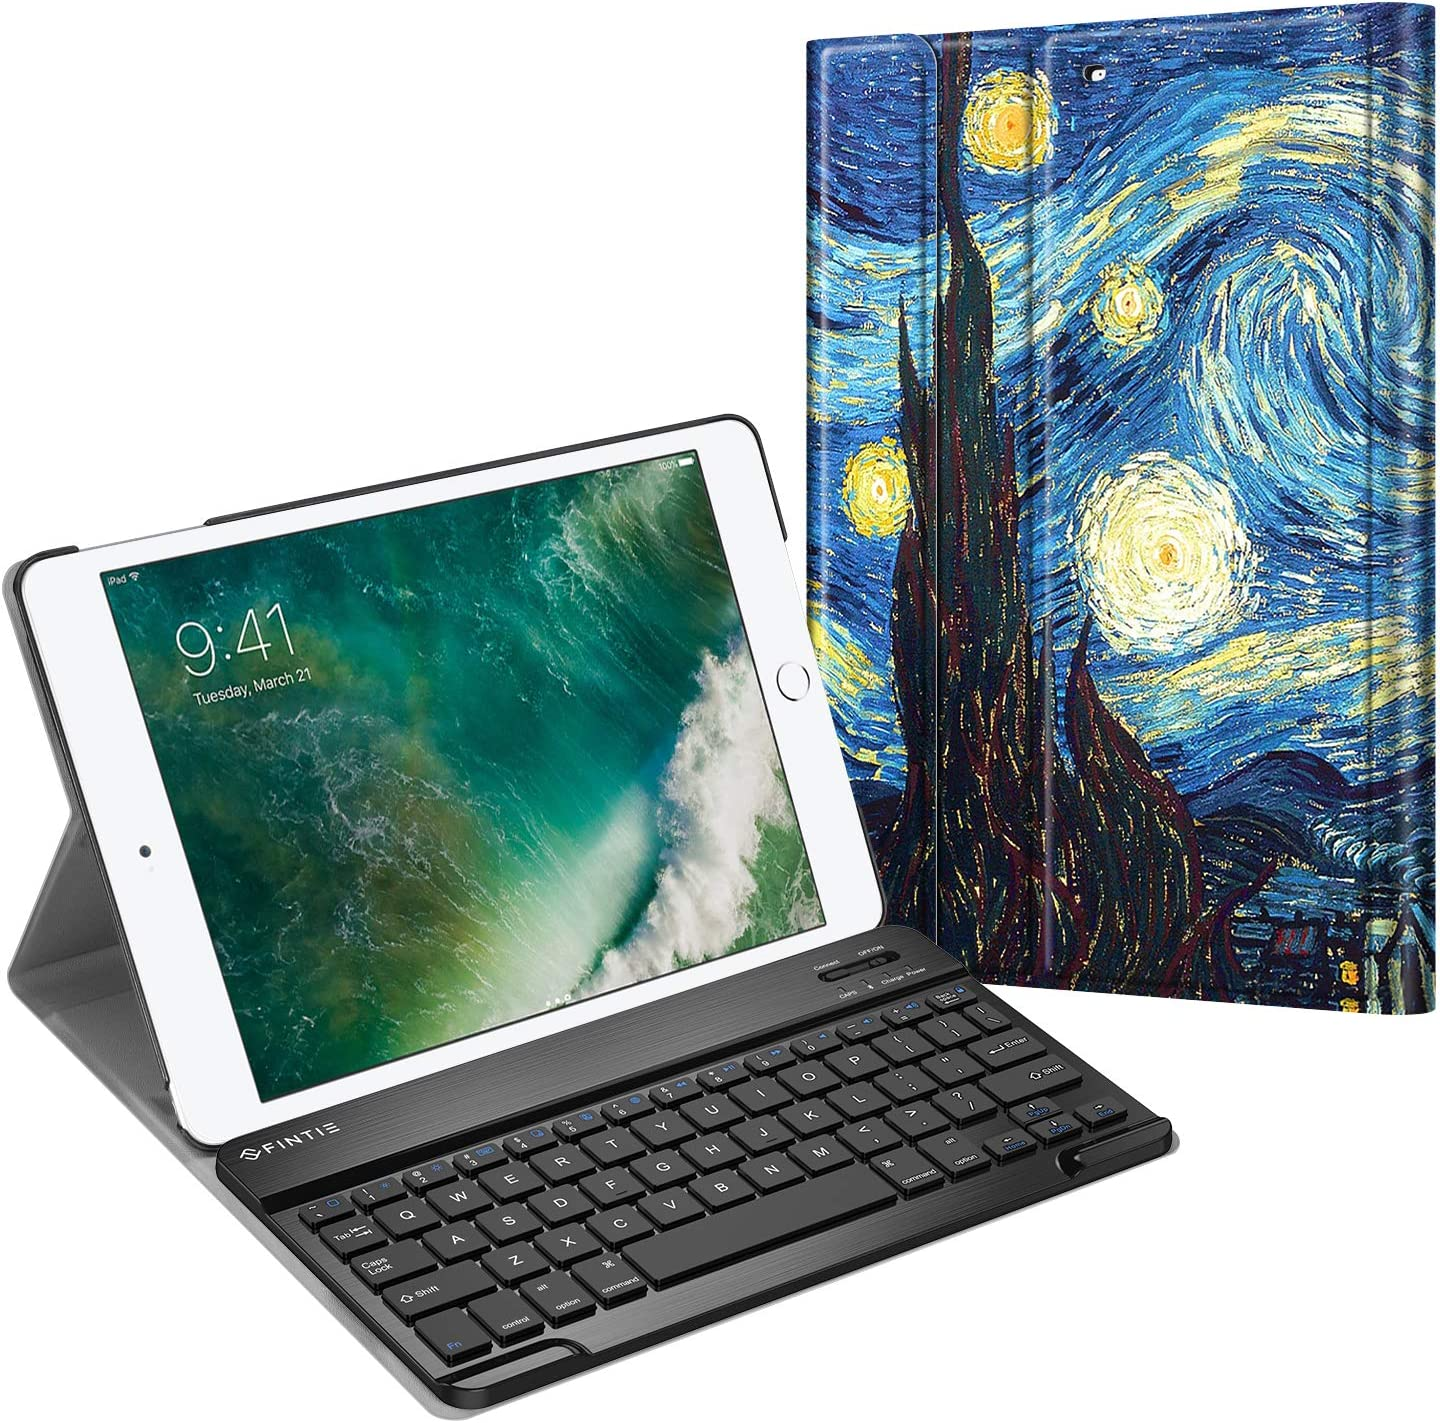 Fintie Keyboard Case for iPad 9.7 2018/2017 / iPad Air 2 / iPad Air - Slim Shell Stand Cover w/Magnetically Detachable Wireless Bluetooth Keyboard for iPad 6th / 5th Gen, iPad Air 1/2, Starry Night